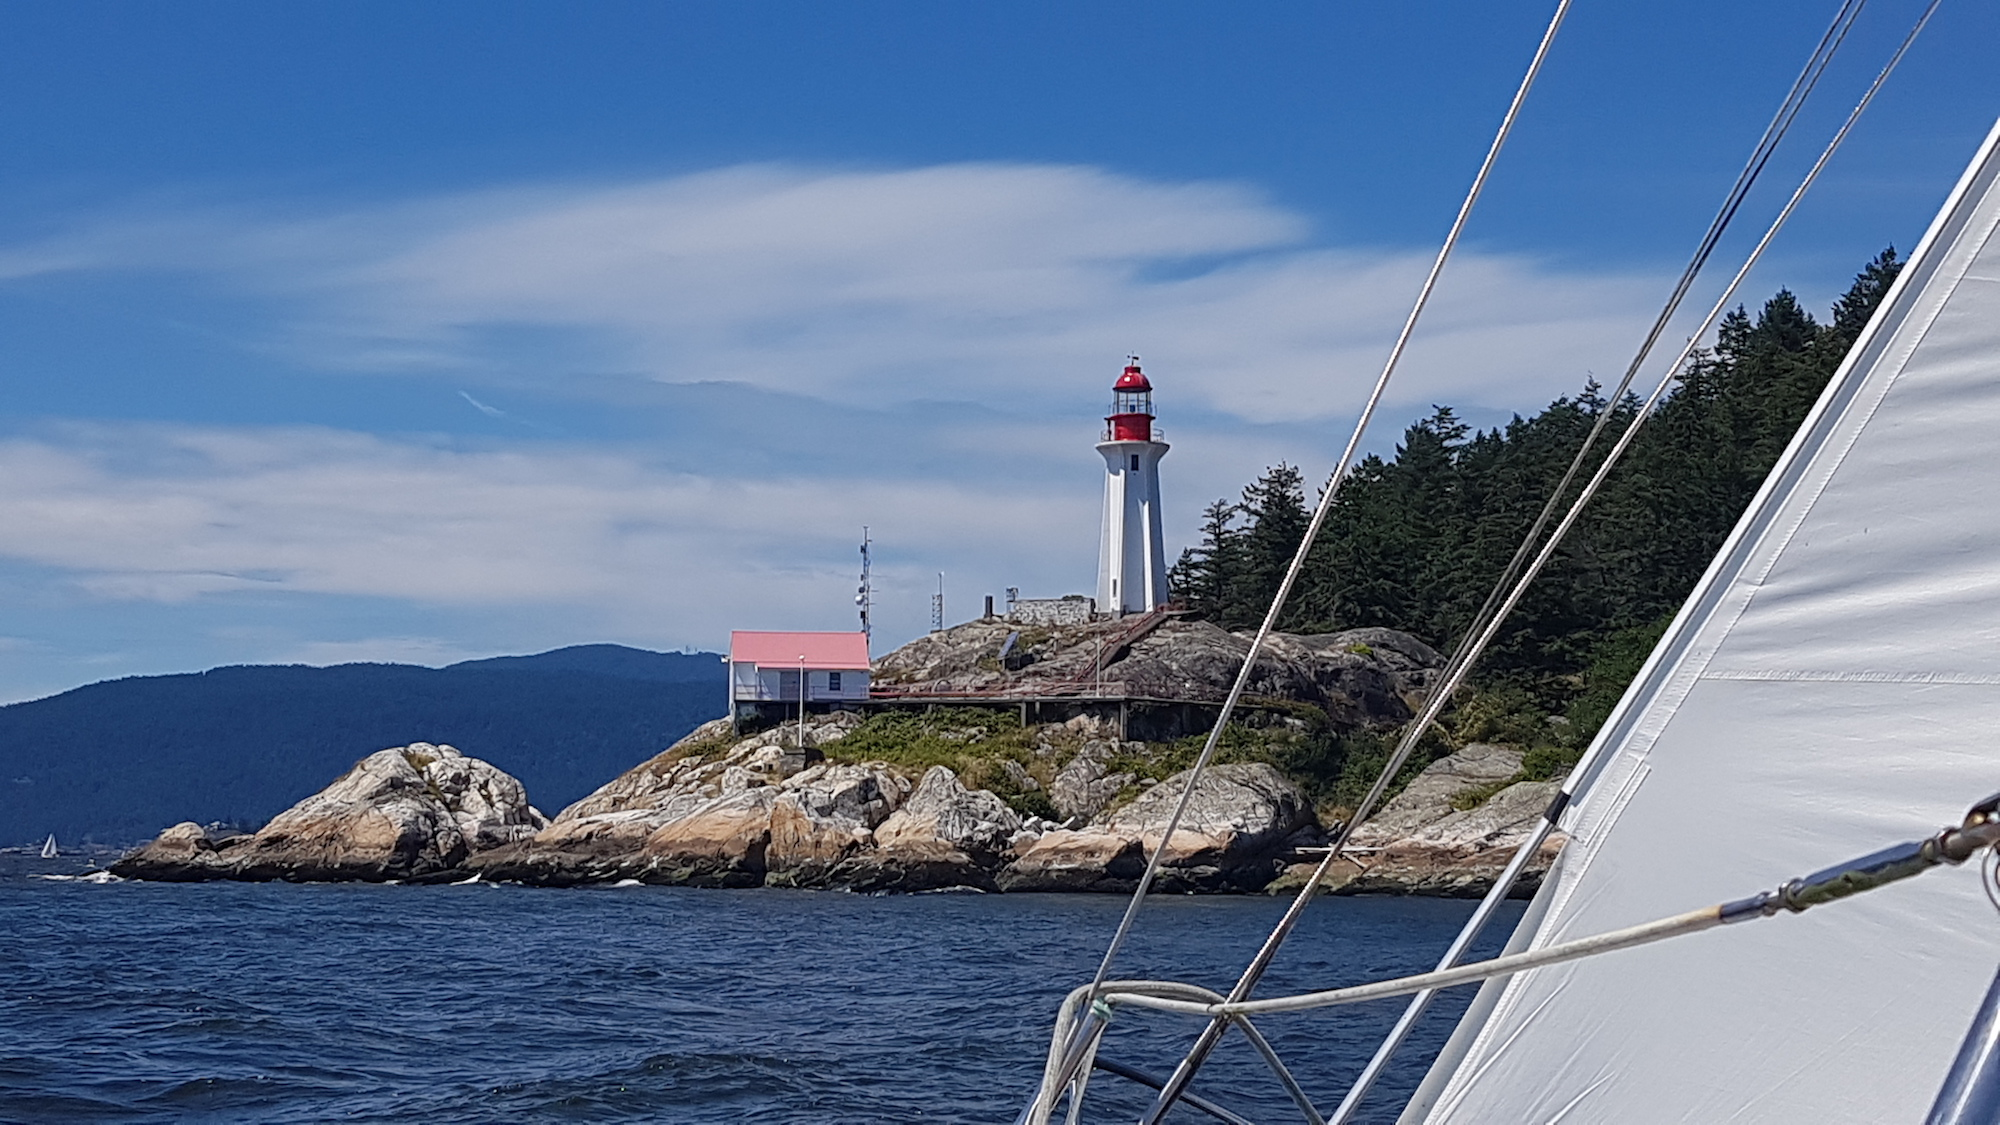 Historic Point Atkinson Lighthouse with a peek of the sheet on Kia Aura sailing past on a summer day